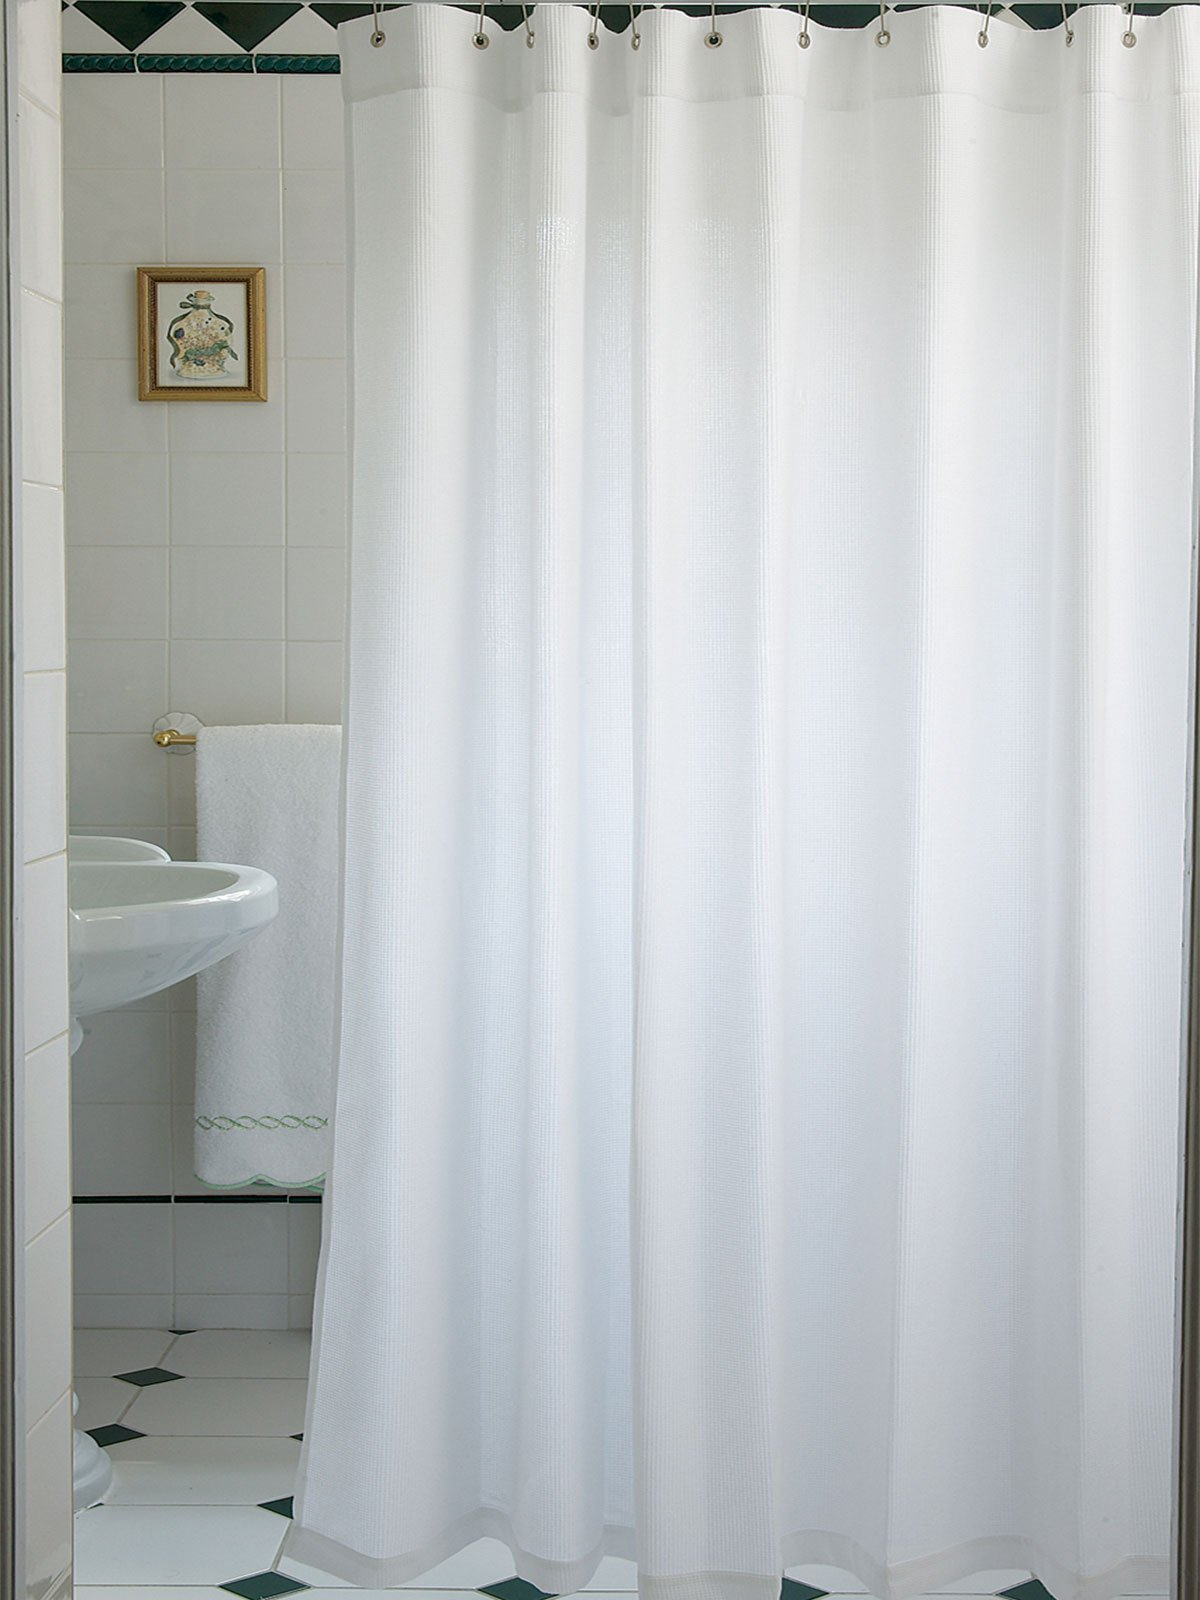 installing white shower to bellissimainteriors expand of advantages waffle weave click ovnerls marvellous curtain curtains